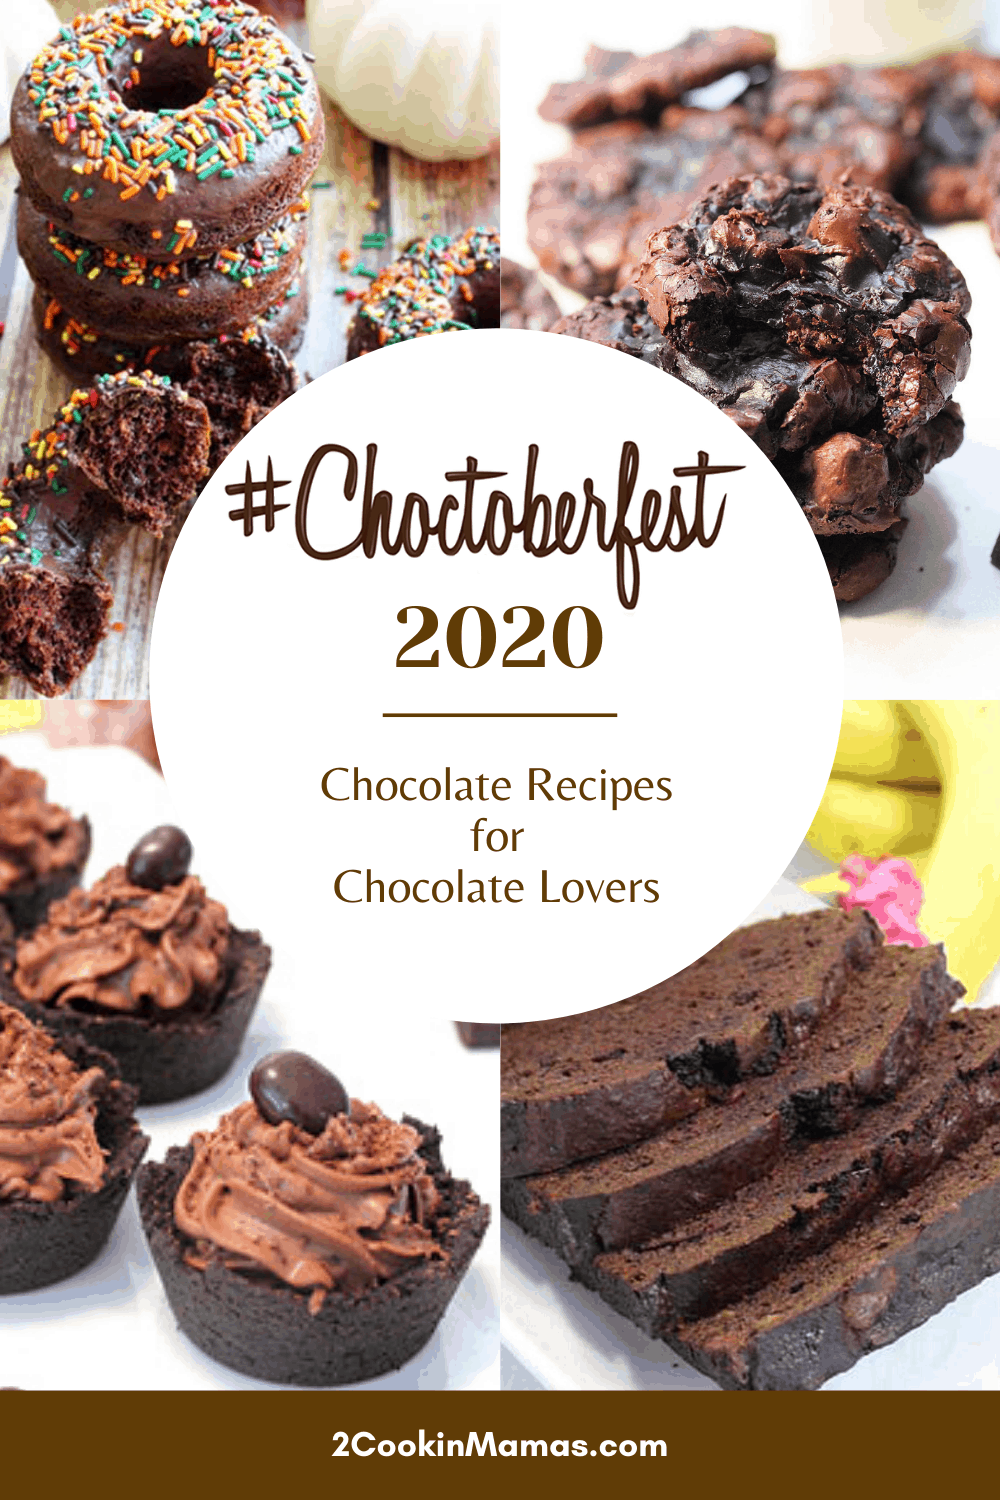 #Choctoberfest - A Week of Chocolate Recipes + Giveaway